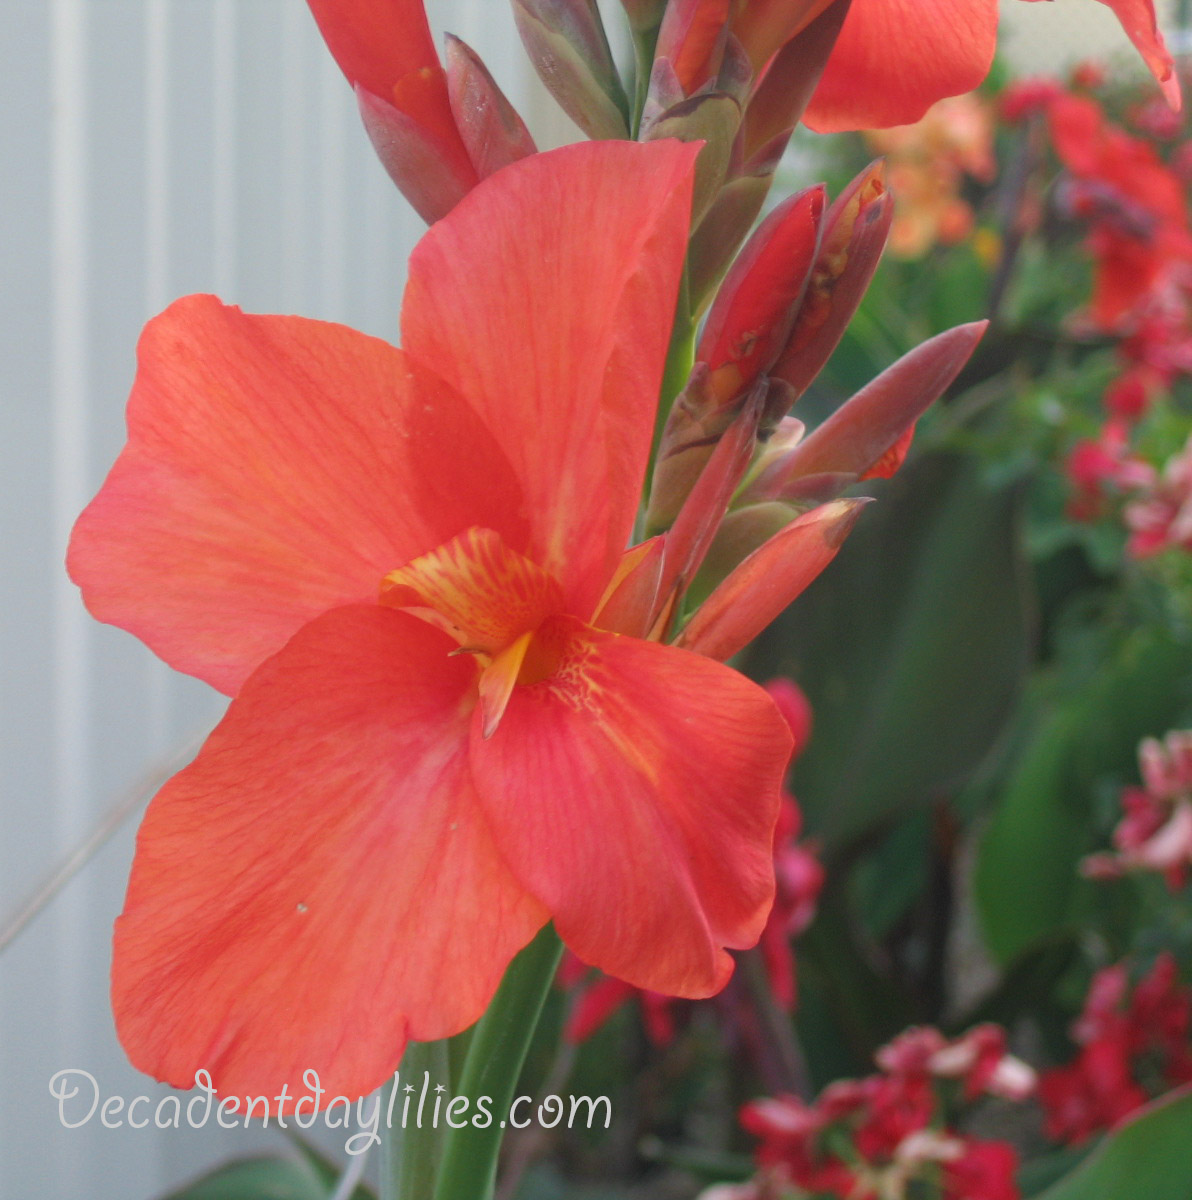 Cannas are They a type of Lily